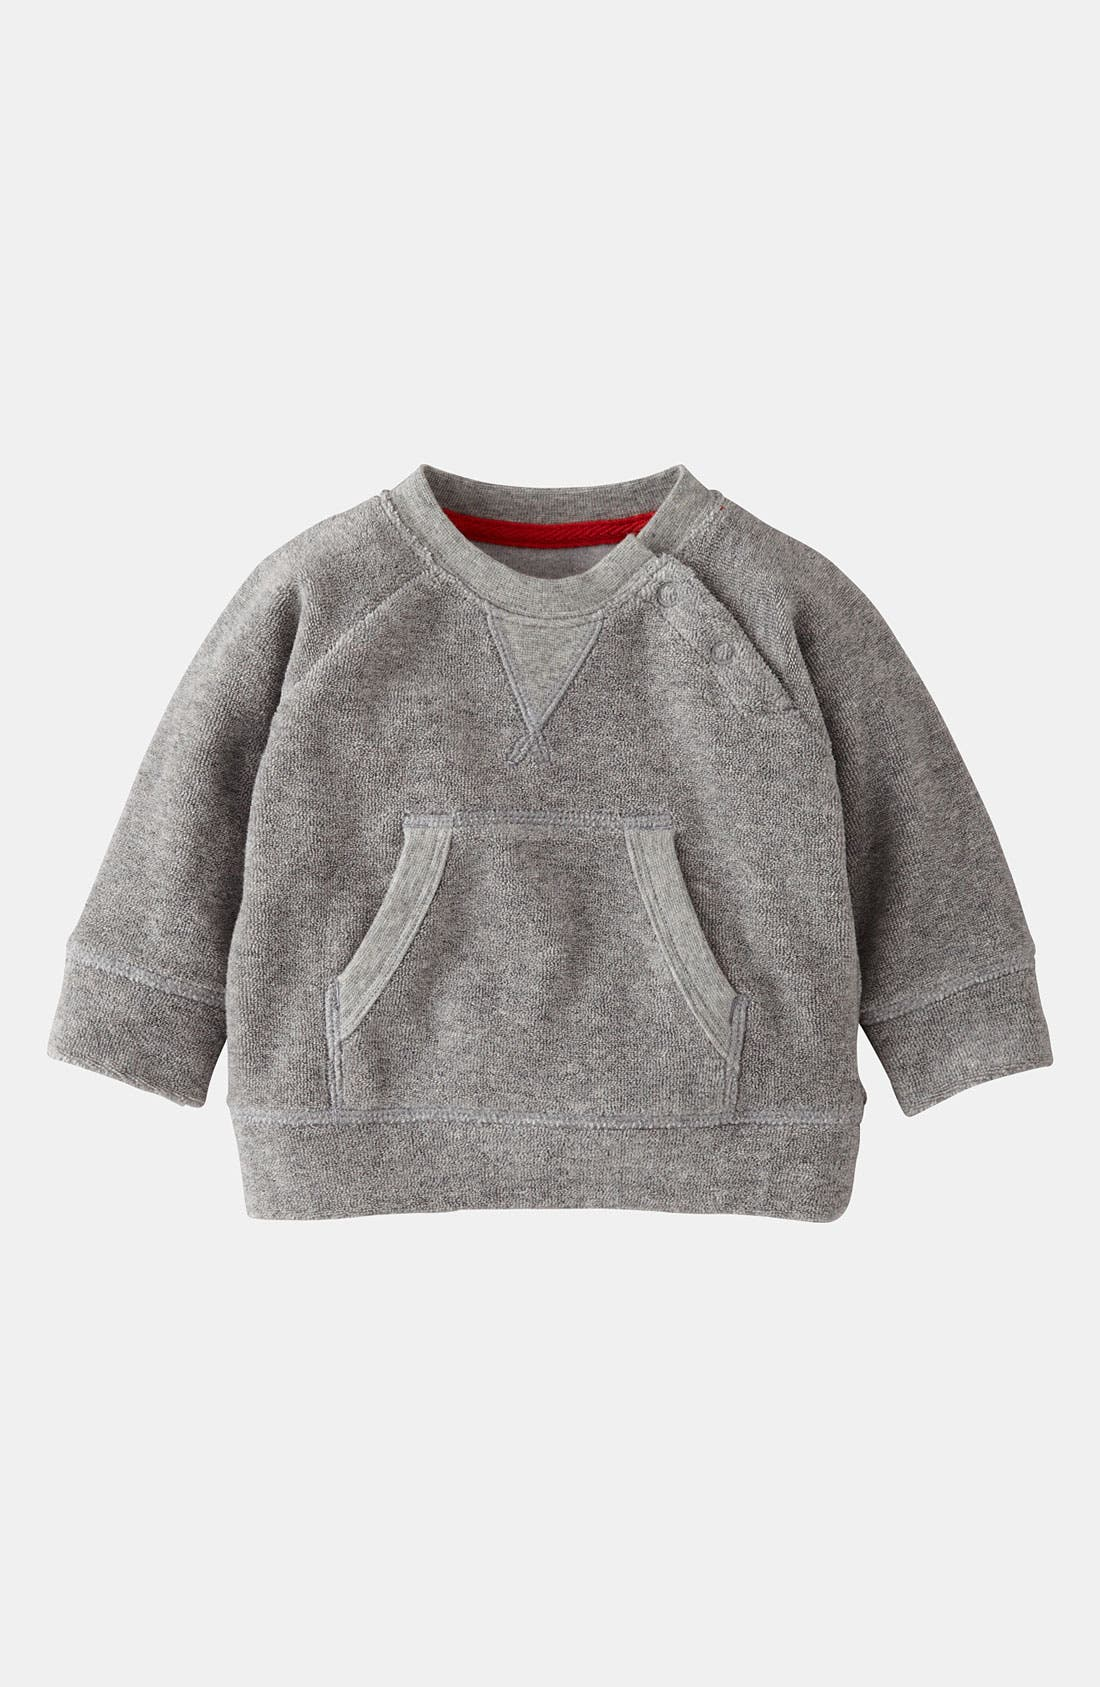 Main Image - Mini Boden 'Toweling' Sweater (Baby)